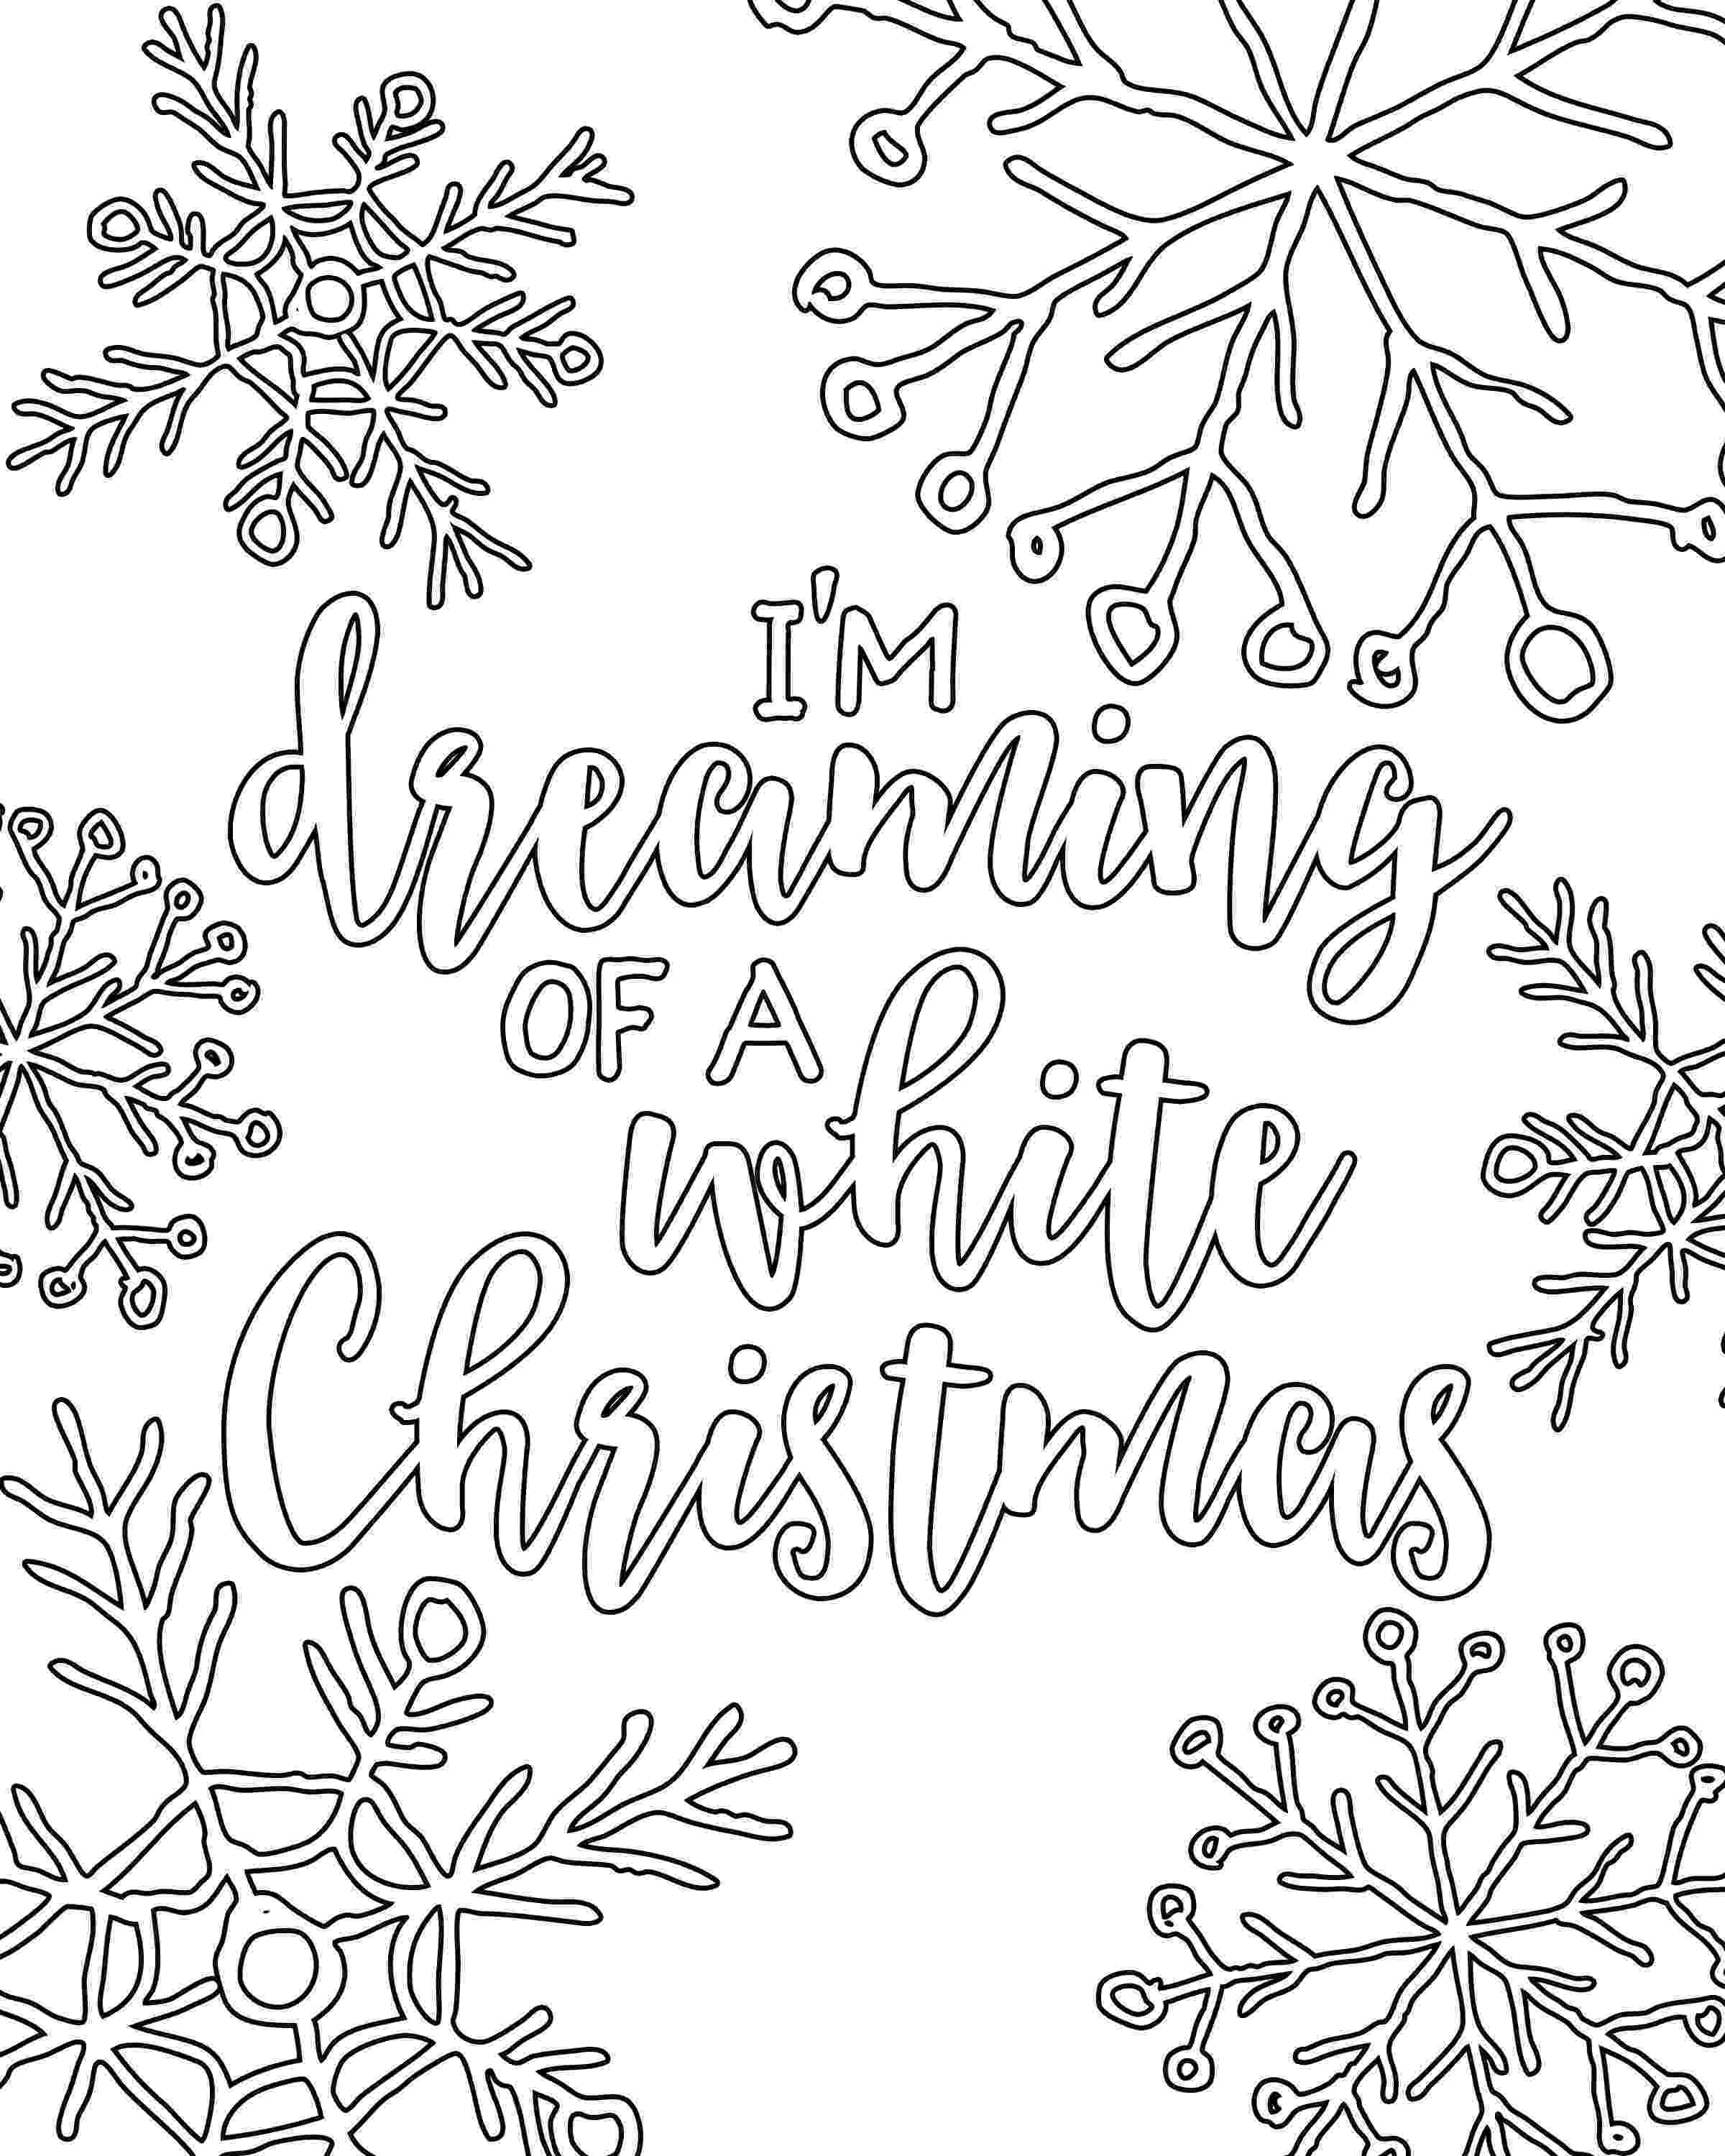 free coloring christmas pages christmas coloring pages games myworldweb coloring free christmas pages